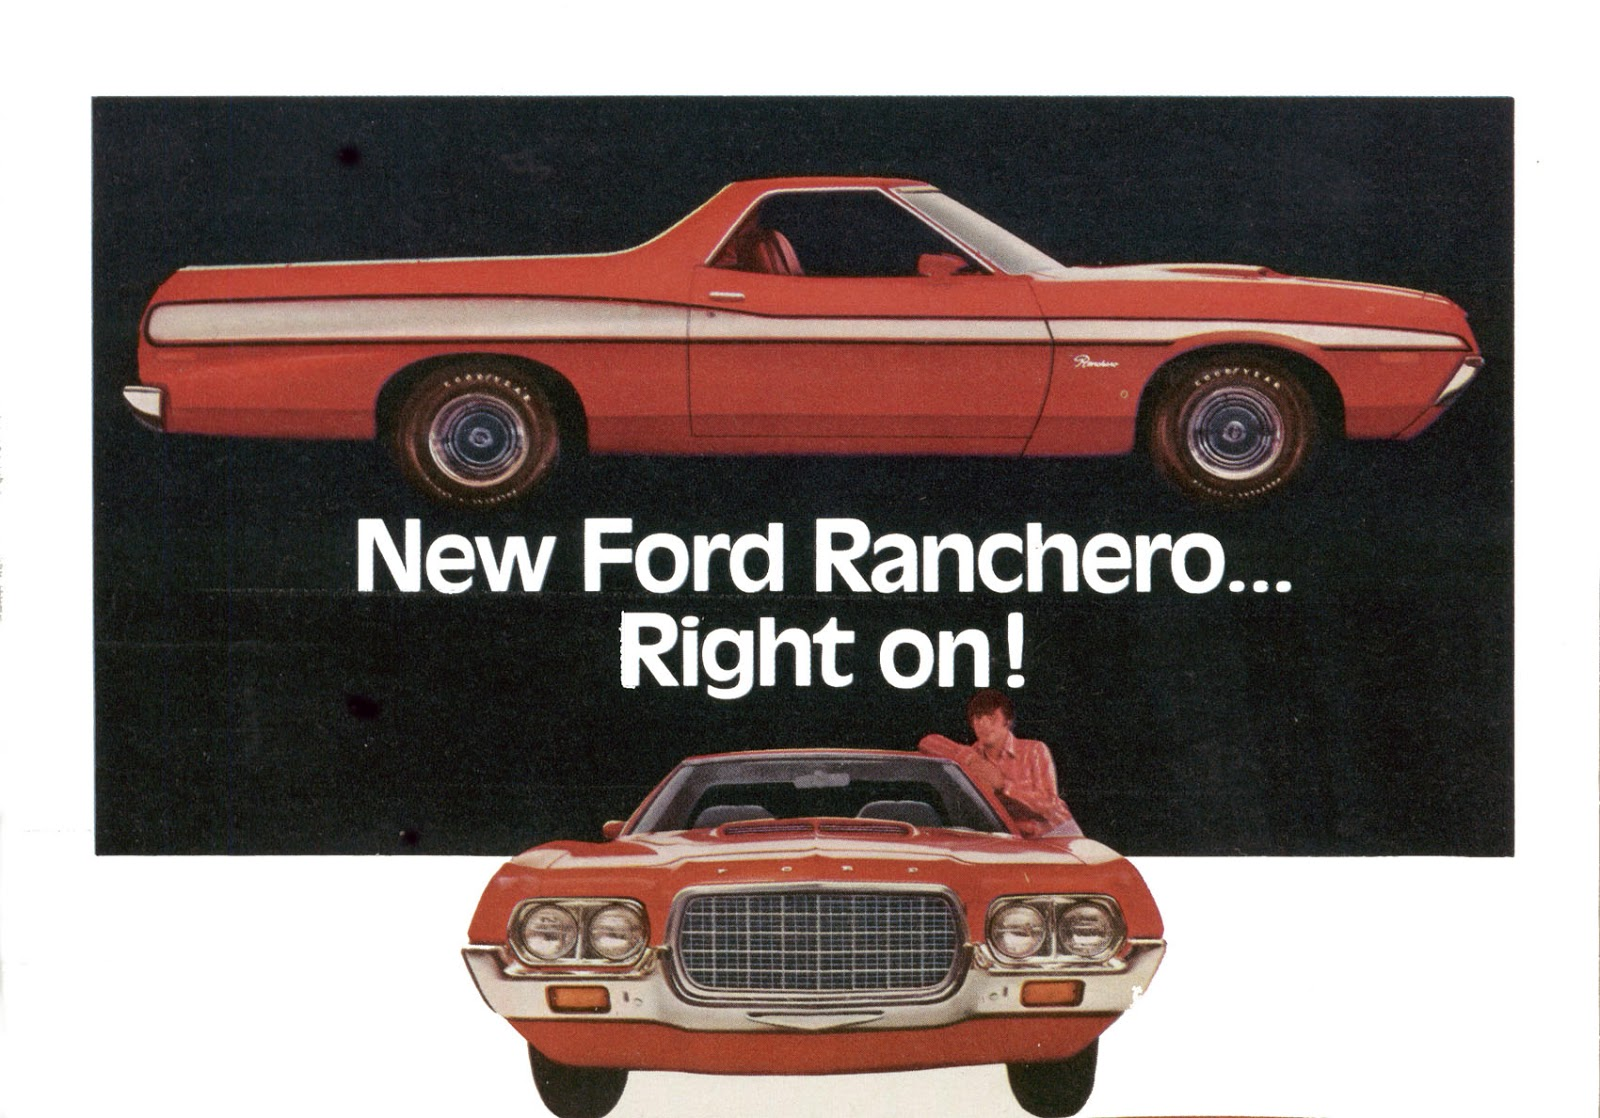 The Ranchero GT model was the new focus for mid size Ford muscle parts.  Starting in 1972, Ford gave equal air time to the Ranchero GT as they did  with ...